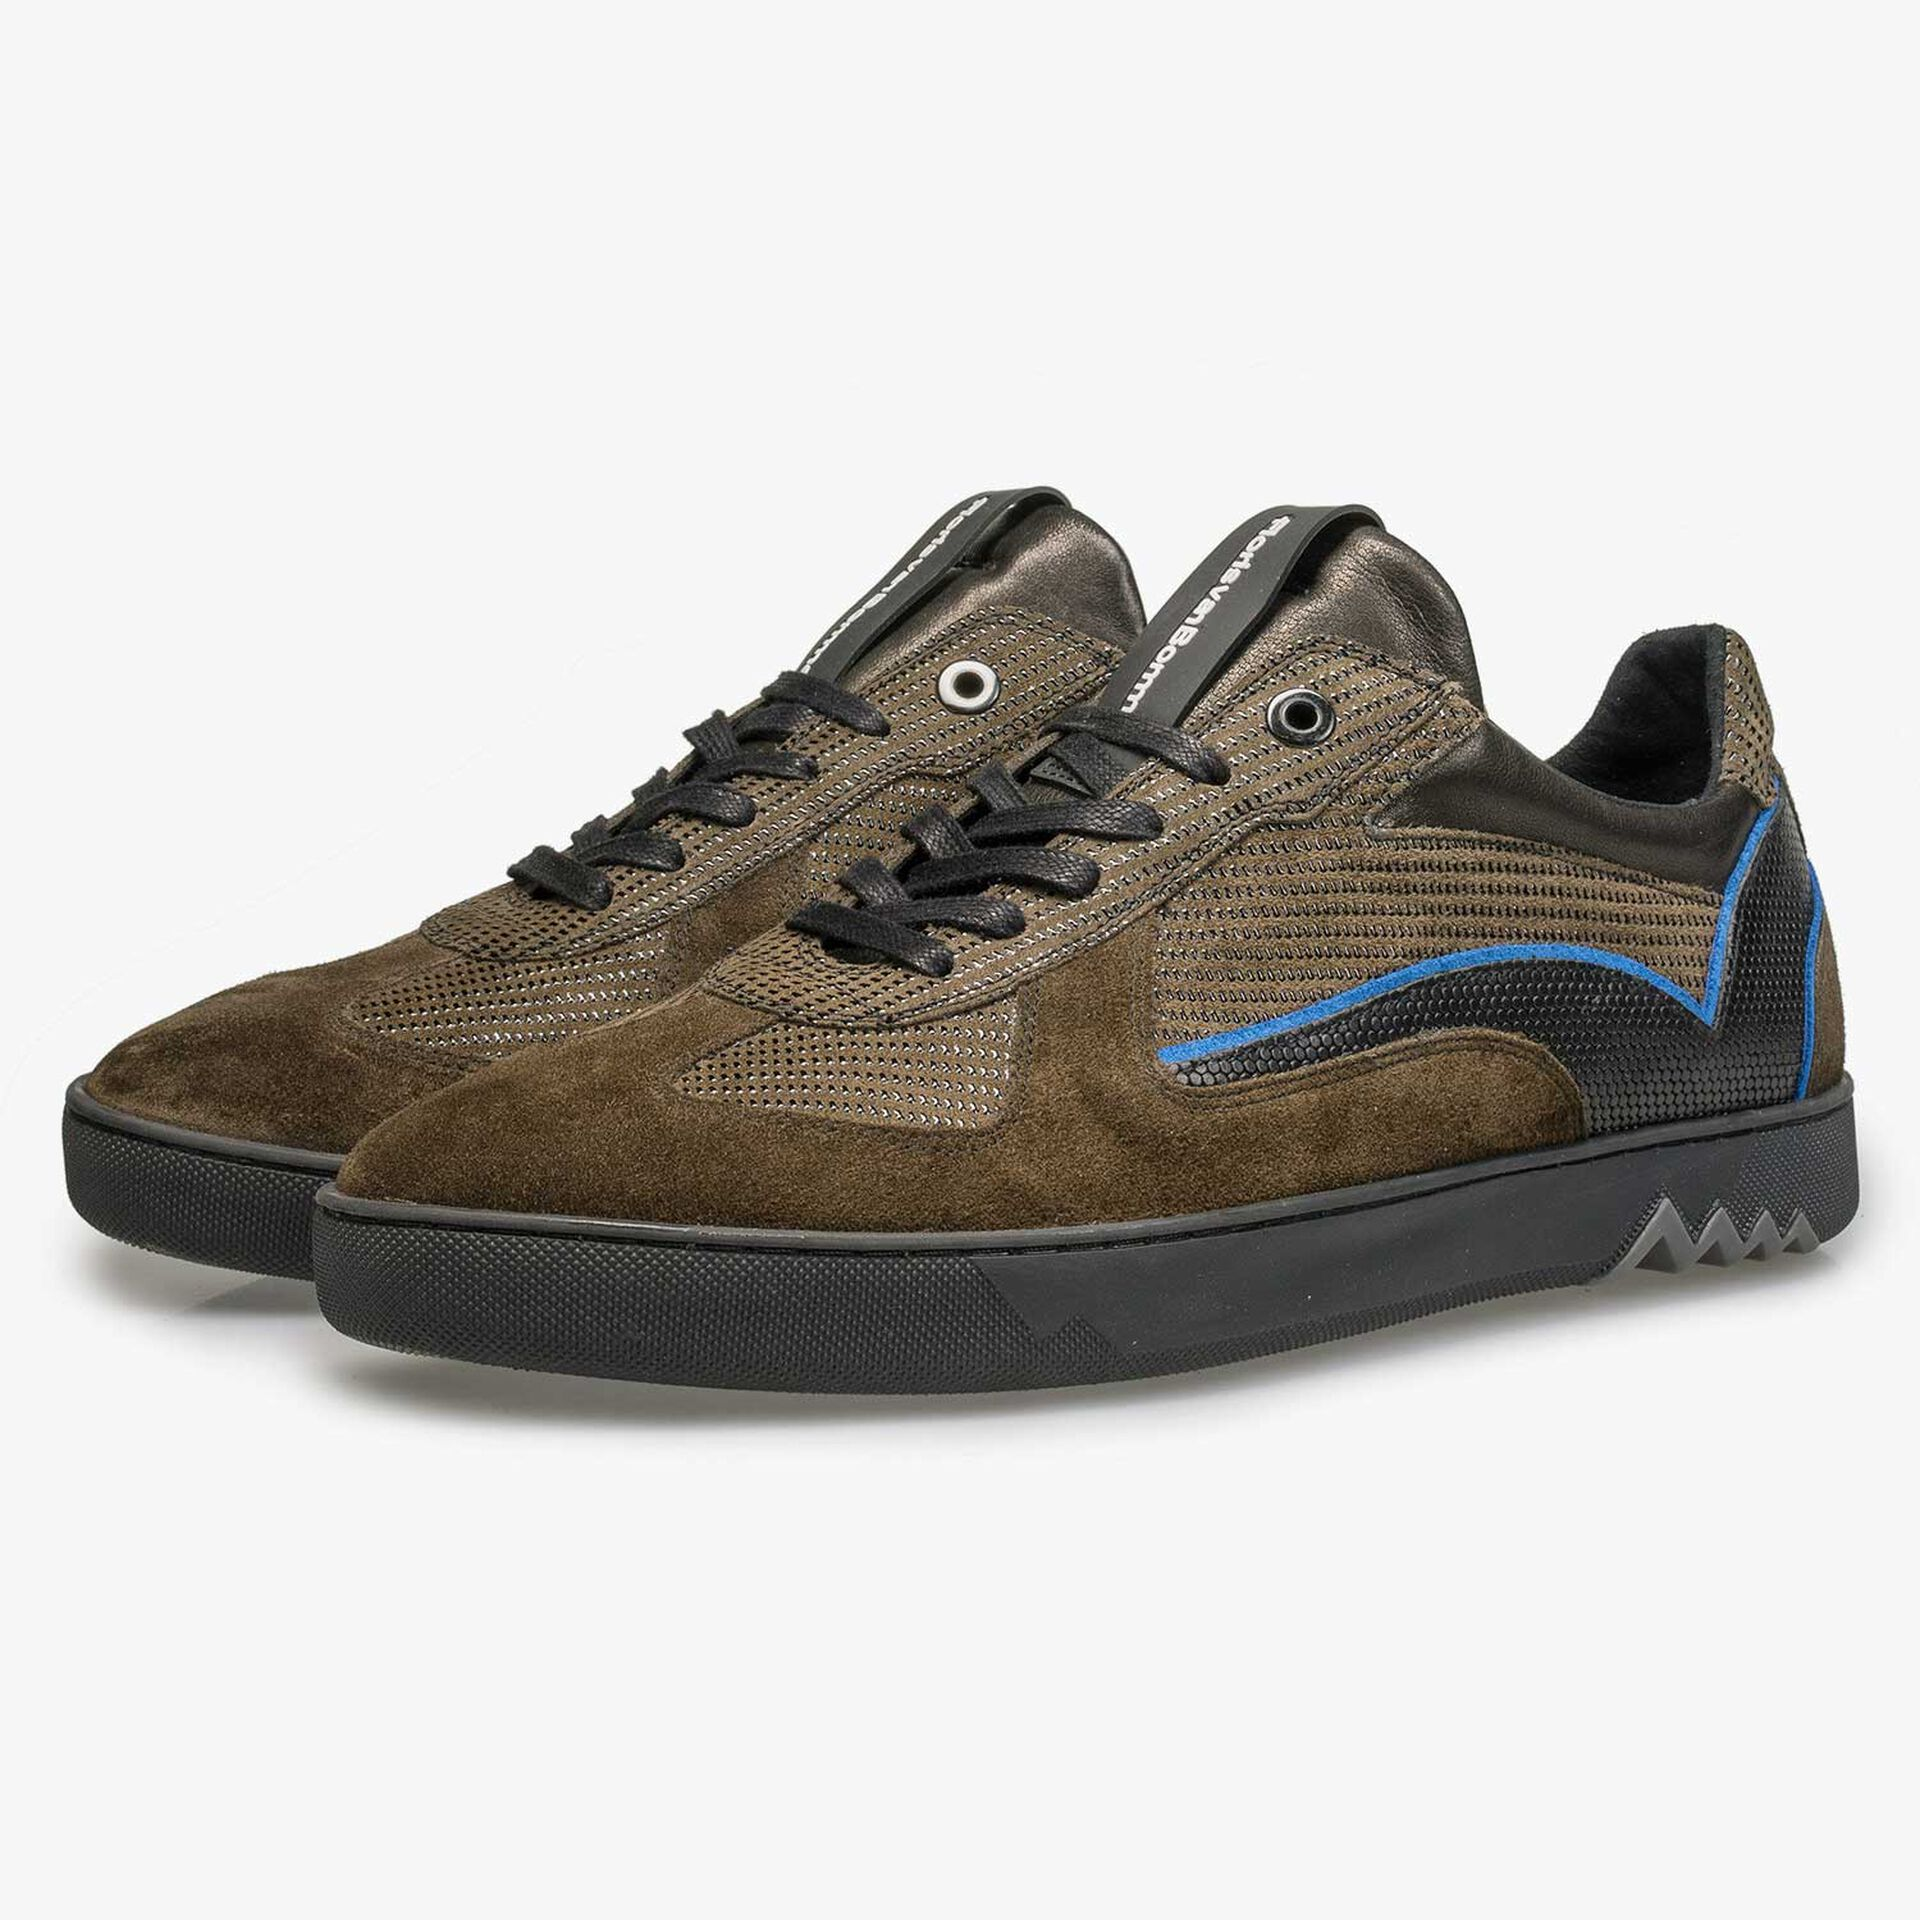 Olive green sneaker with black pattern